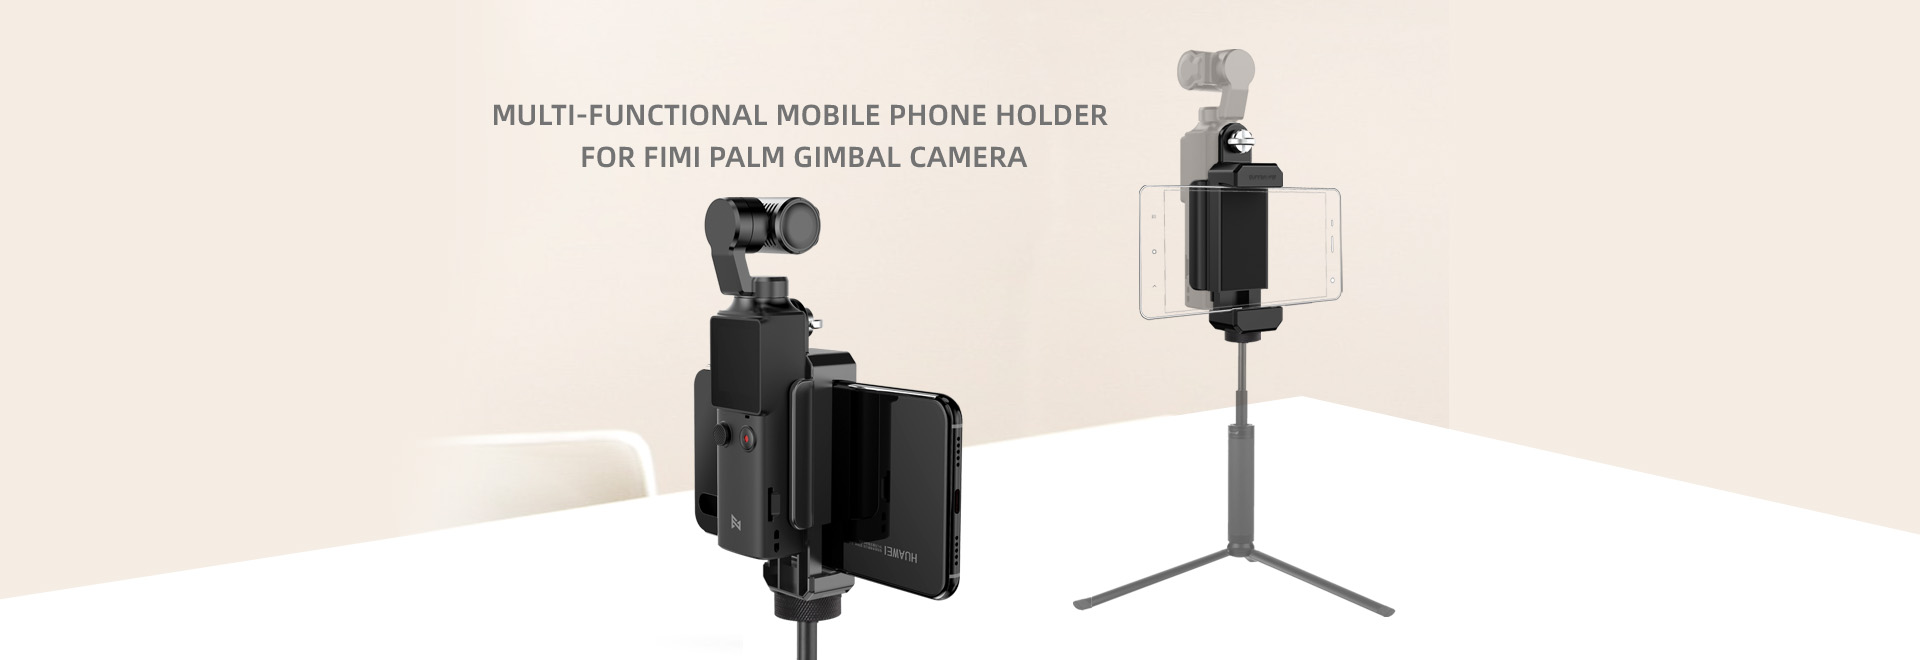 Mobile Phone Holder for FIMI PALM